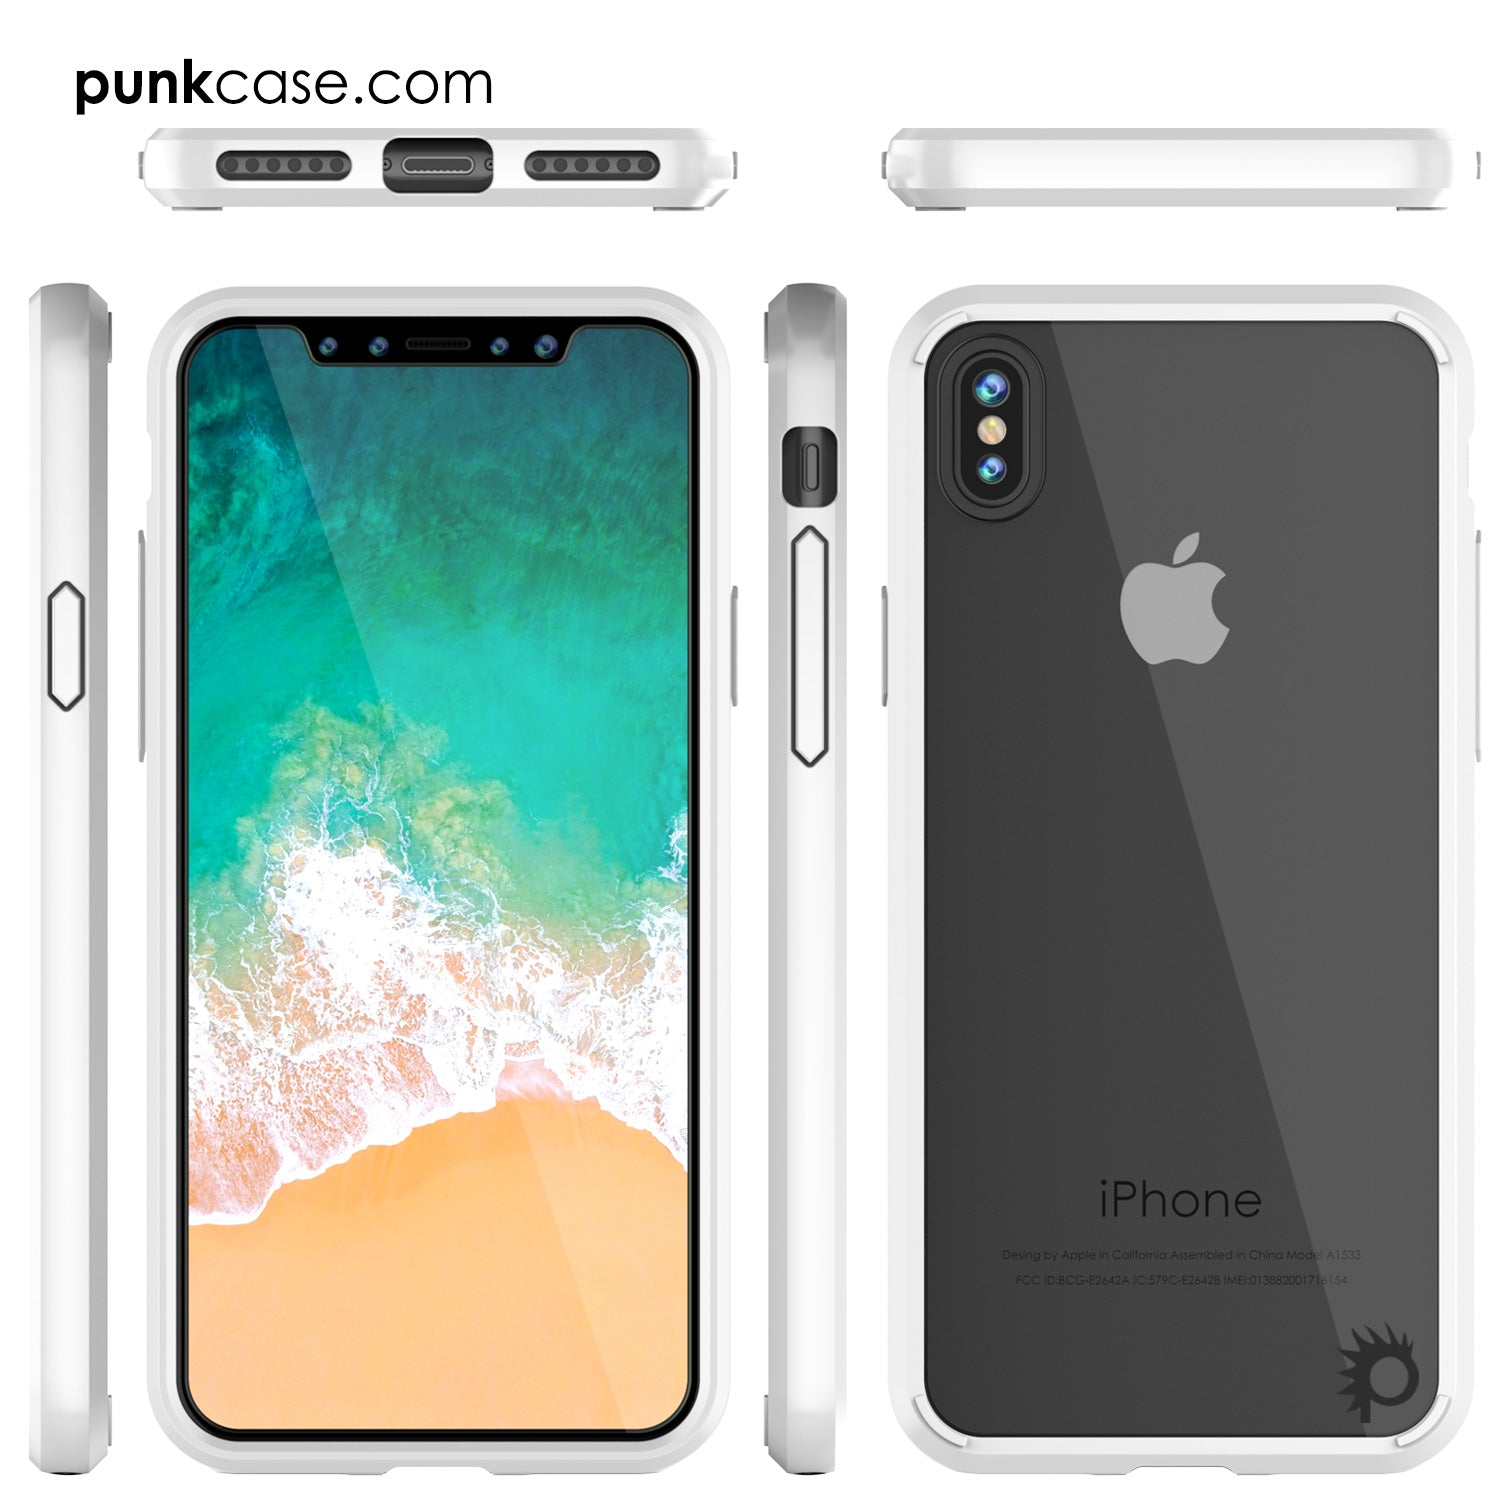 iPhone X Case, PUNKcase [LUCID 2.0 Series] [Slim Fit] Armor Cover W/Integrated Anti-Shock System [White]